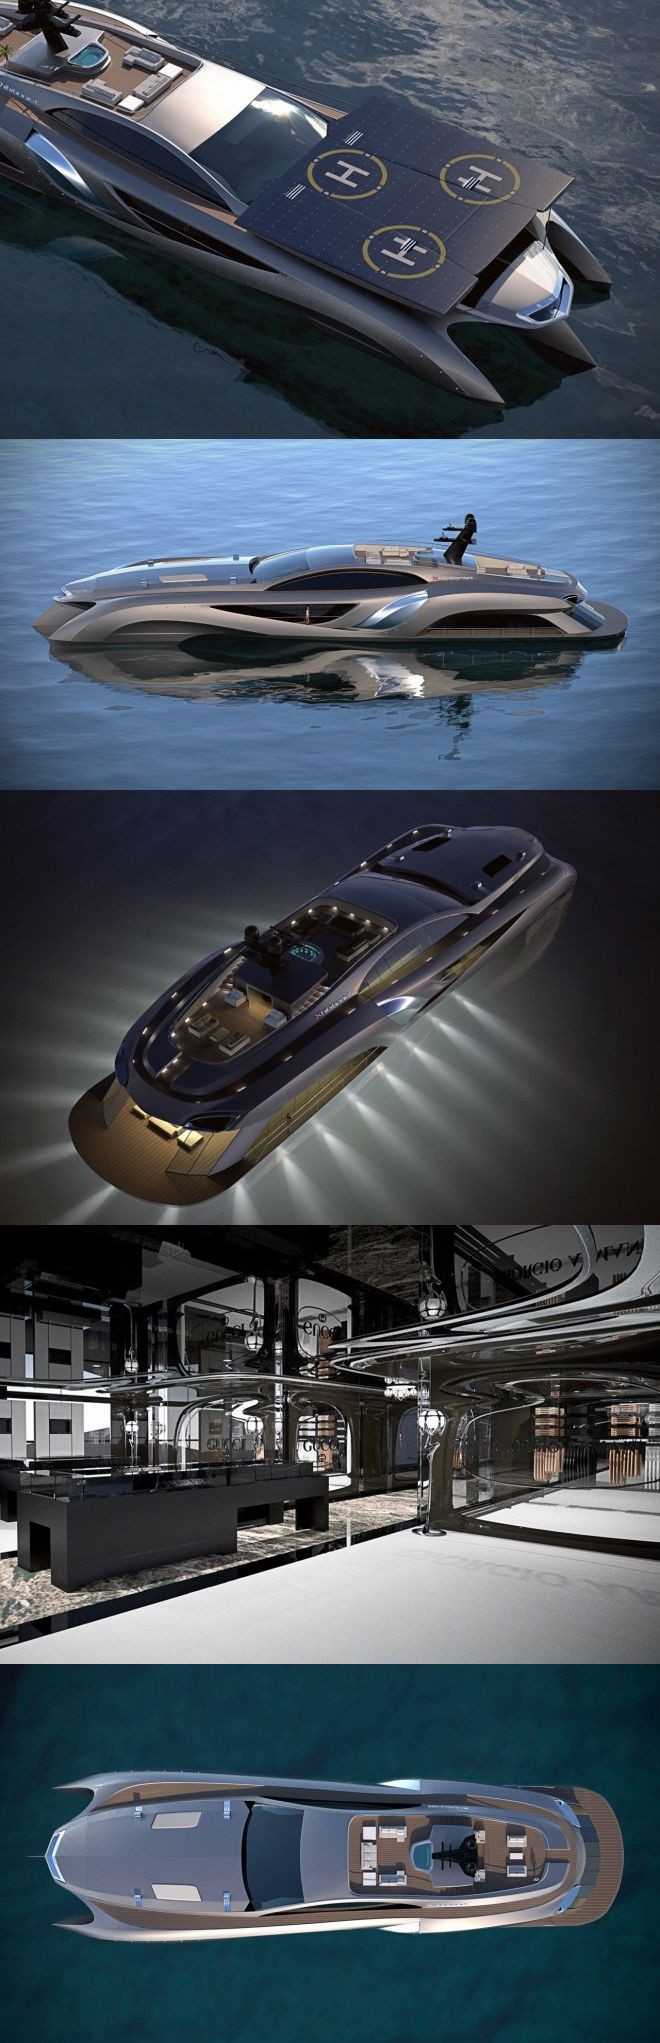 ♂ Masculine & elegance This extraordinary yacht by Gray Designs is 75-meters in size and decked out with the best of technology and design. Features a car showroom, retail space, entertaining room and a roof with built-in solar panels that double as a helicopter landing pad. On the engine side, it boasts a 630-horsepower V12 engine, making quick getaways a breeze. Original from http://airows.com/xhibitionist-superyacht-by-gray-designs/